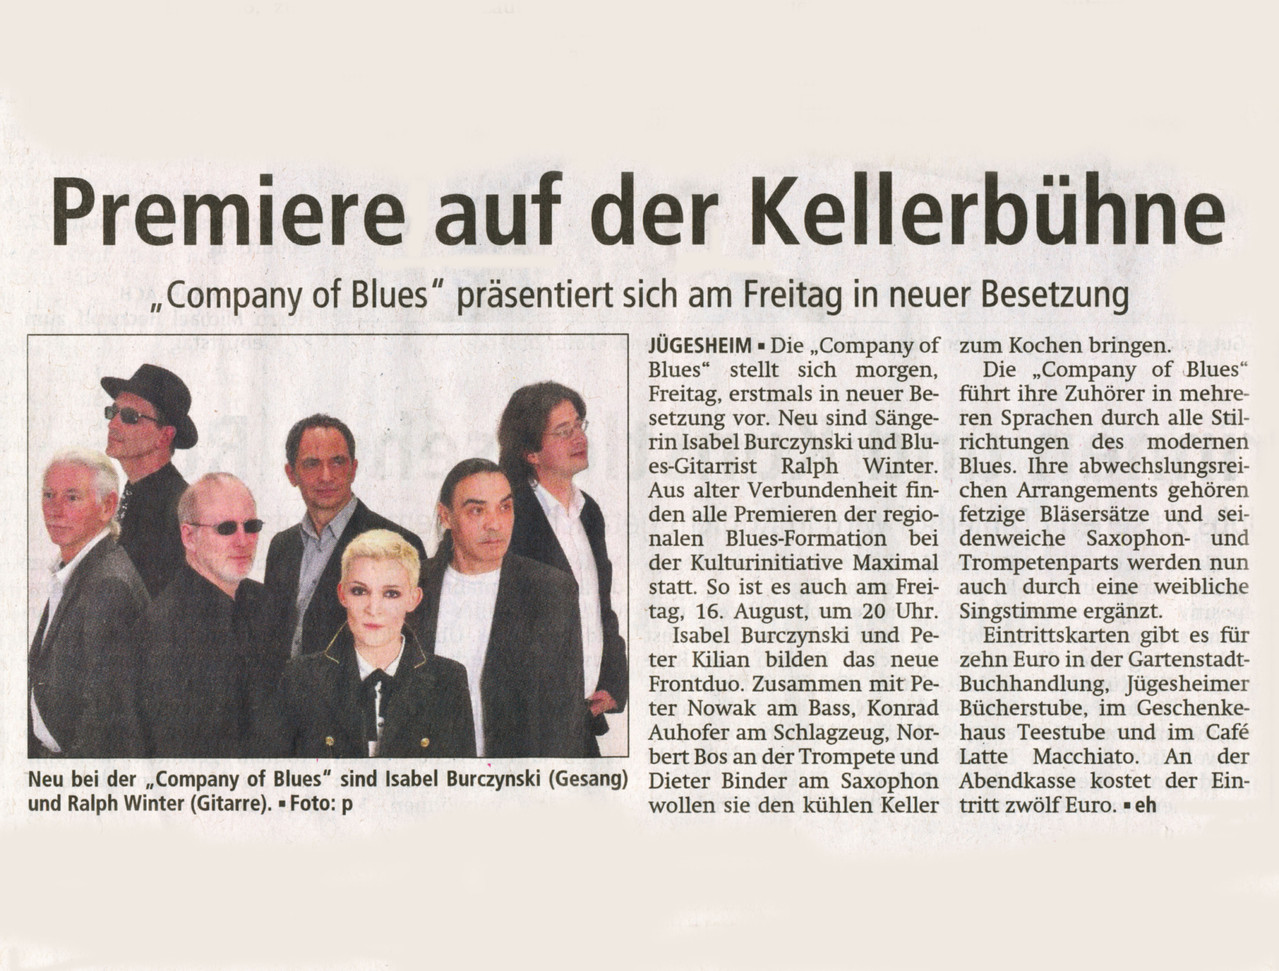 Offenbach Post, 15. August 2013